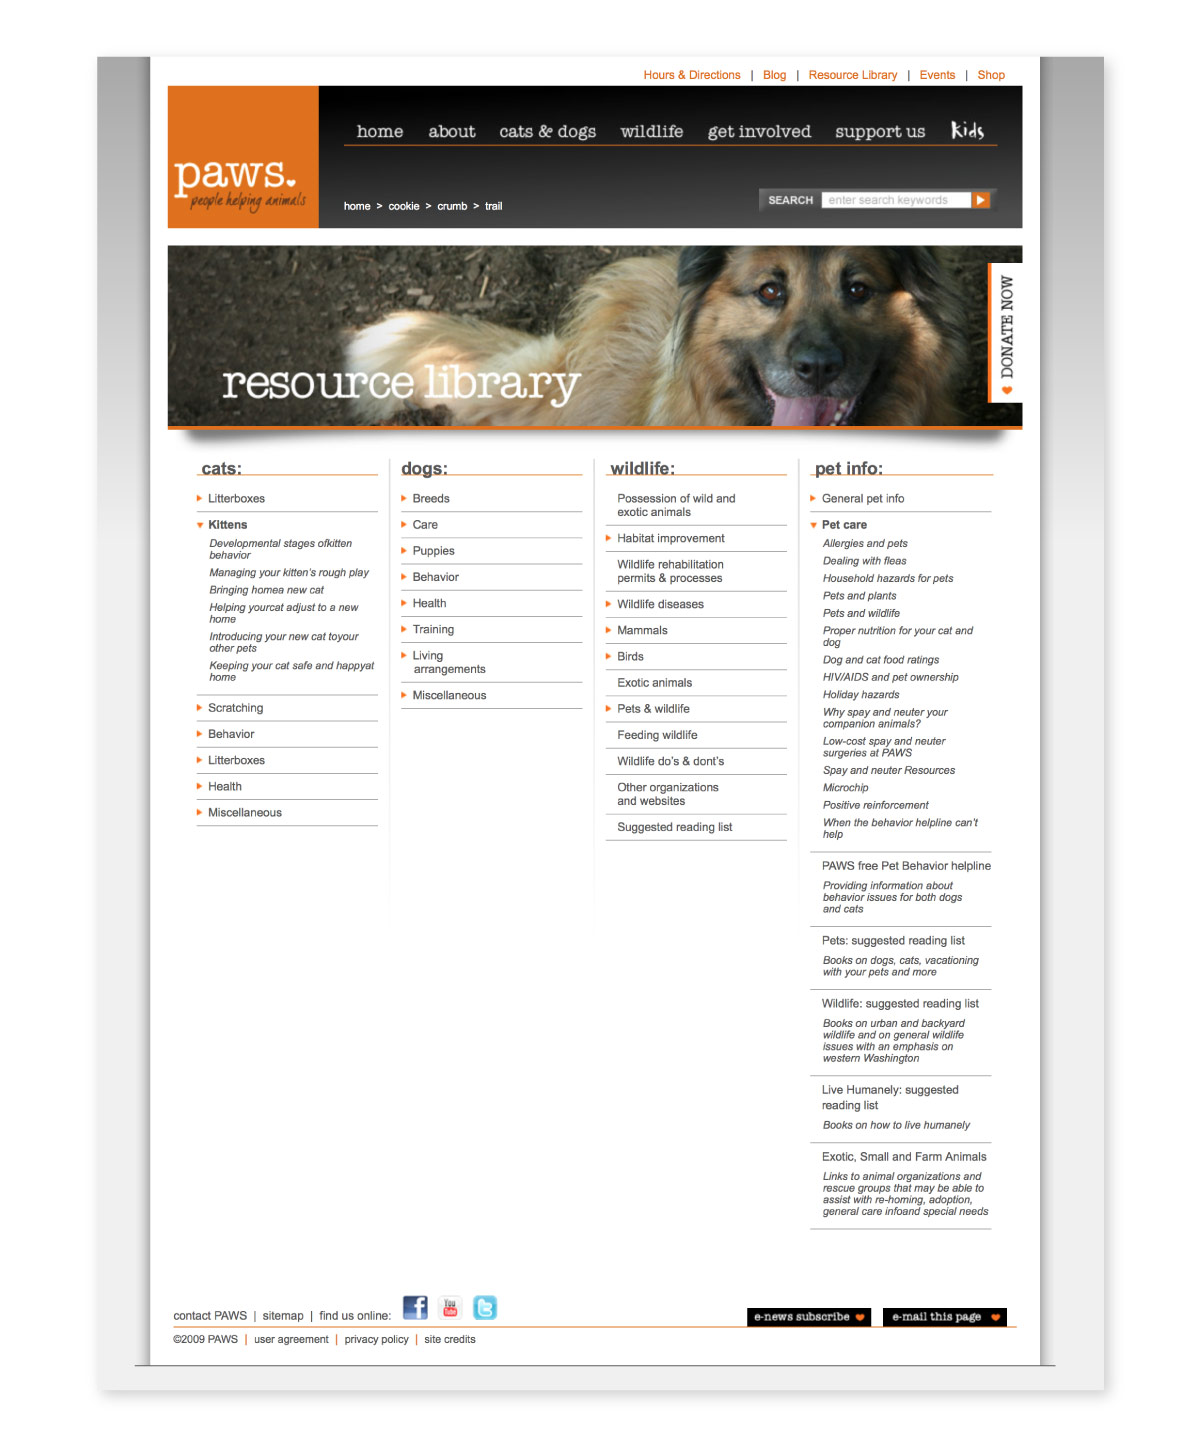 PAWS website interior page